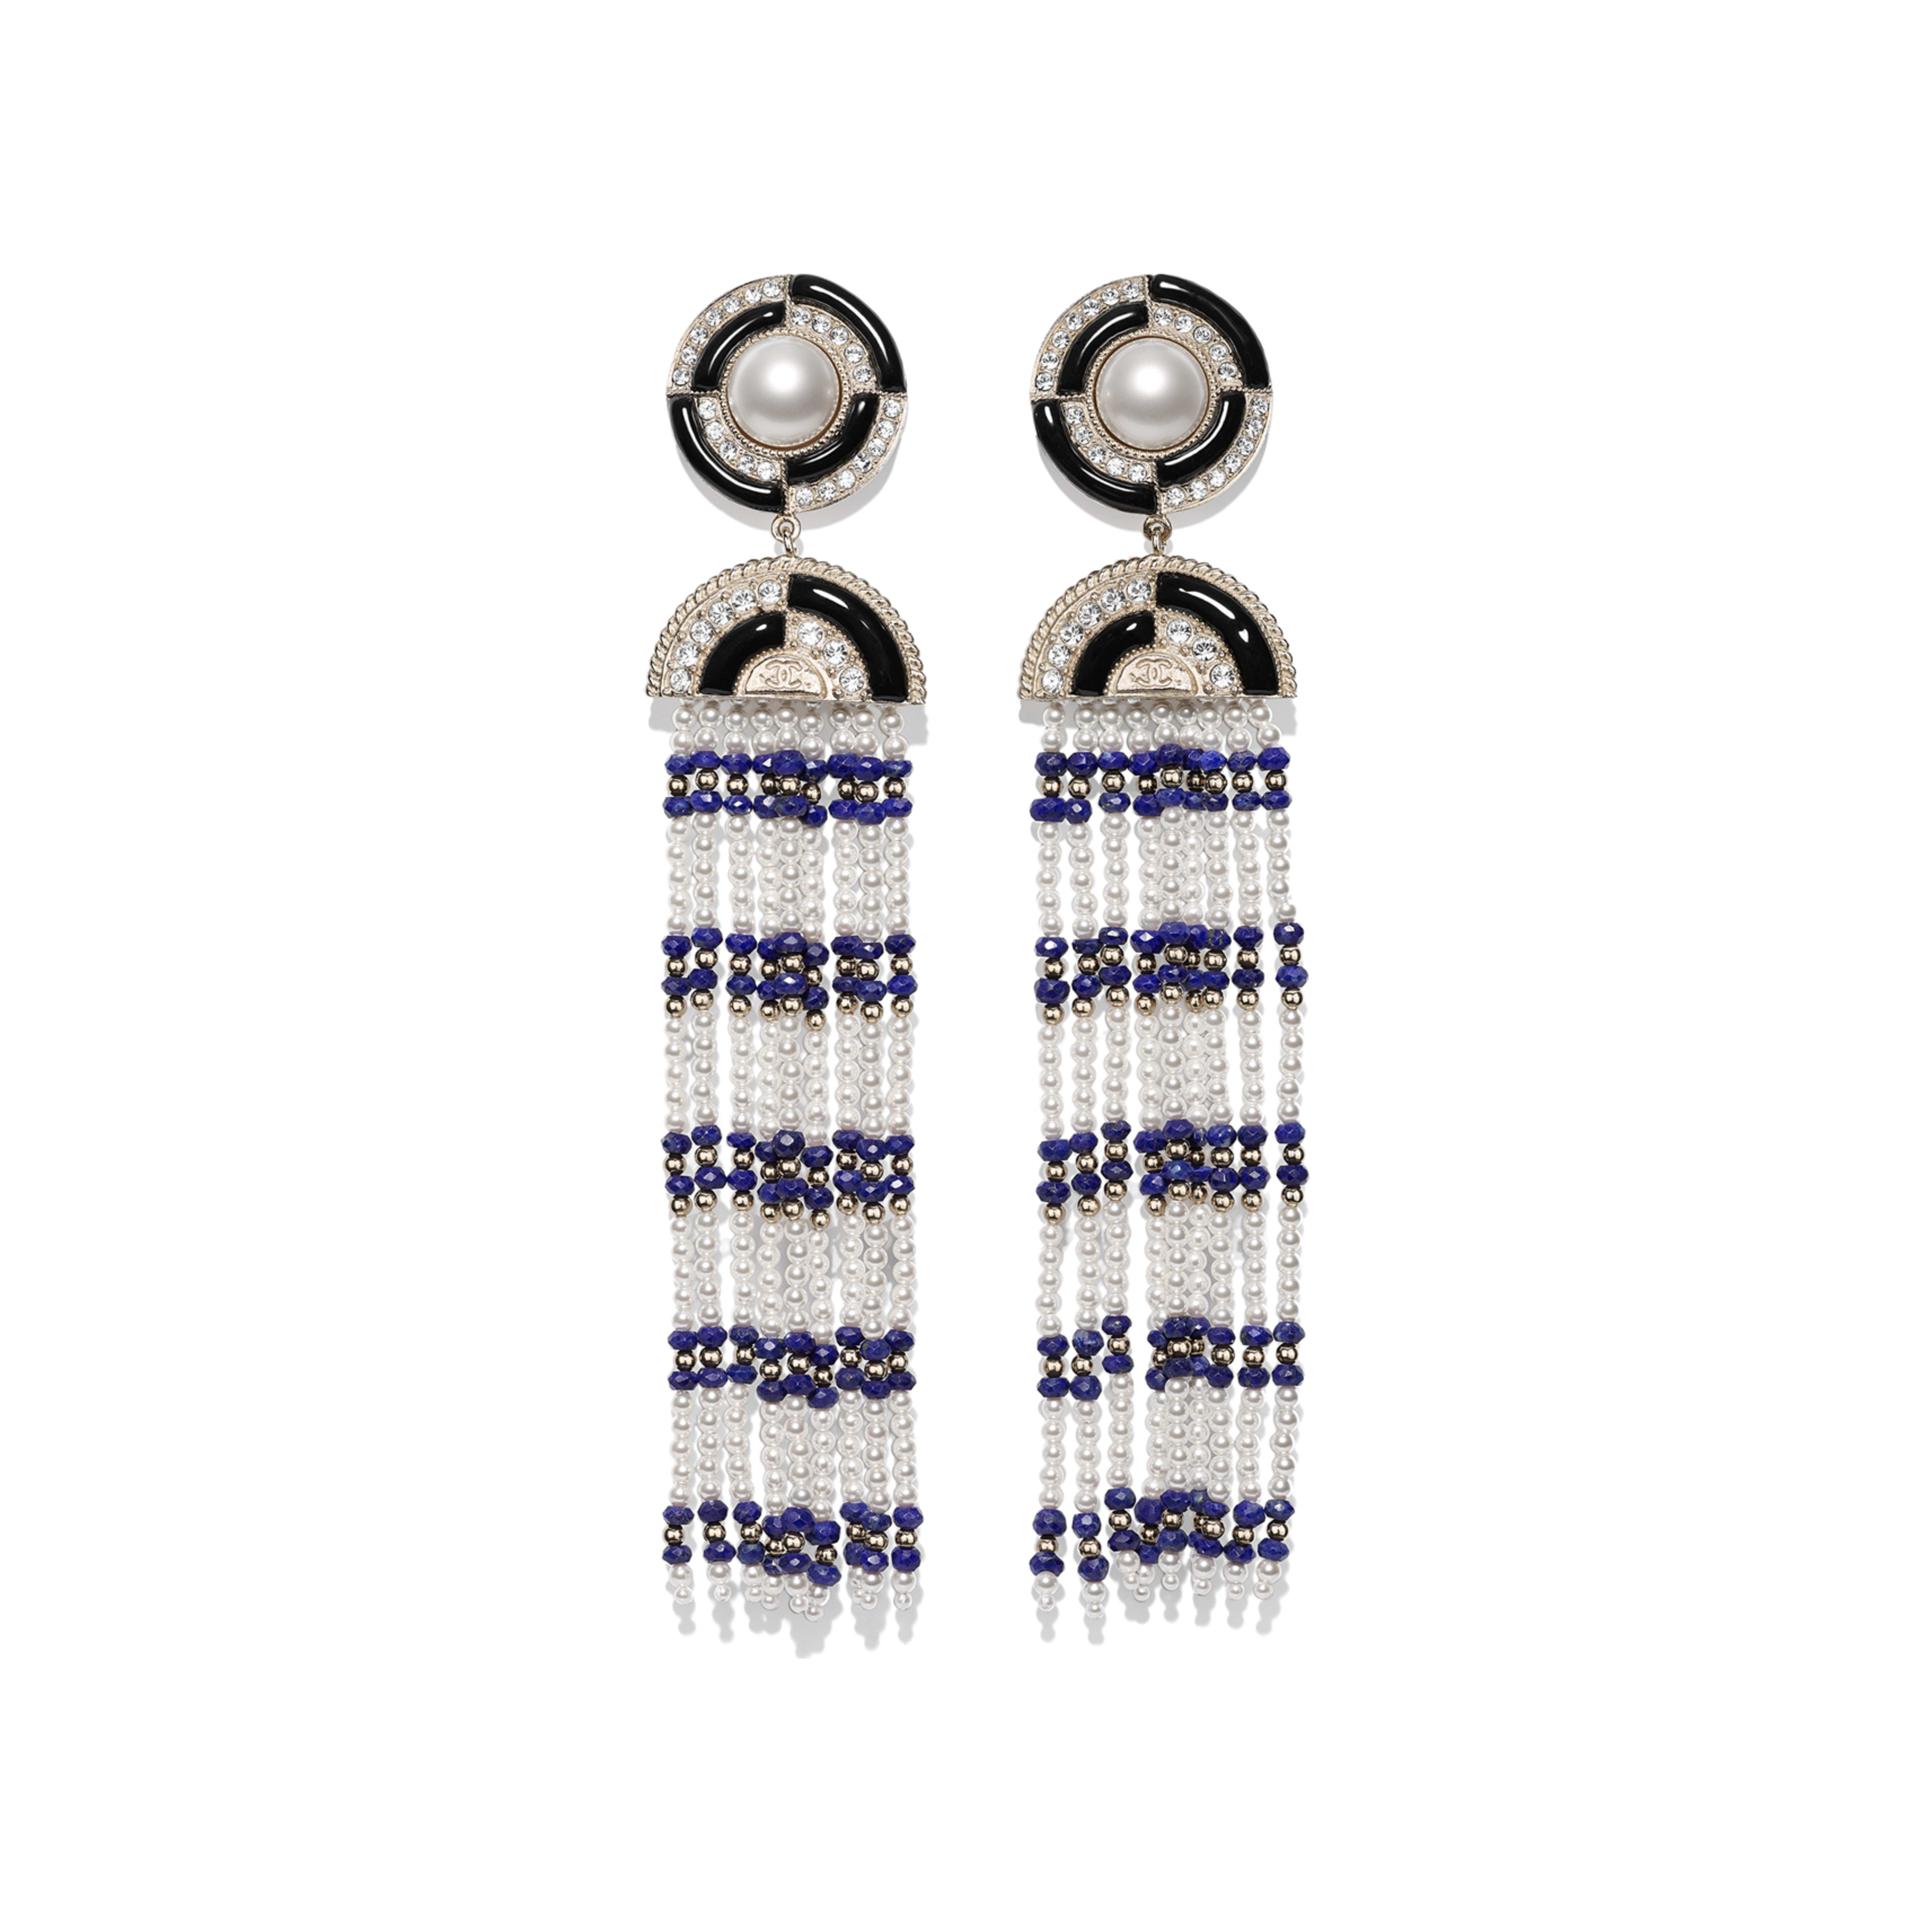 Clip-on Earrings - Gold, Black, Blue, Pearly White & Crystal - Metal, Natural Stones, Glass Pearls, Strass & Resin - Default view - see full sized version